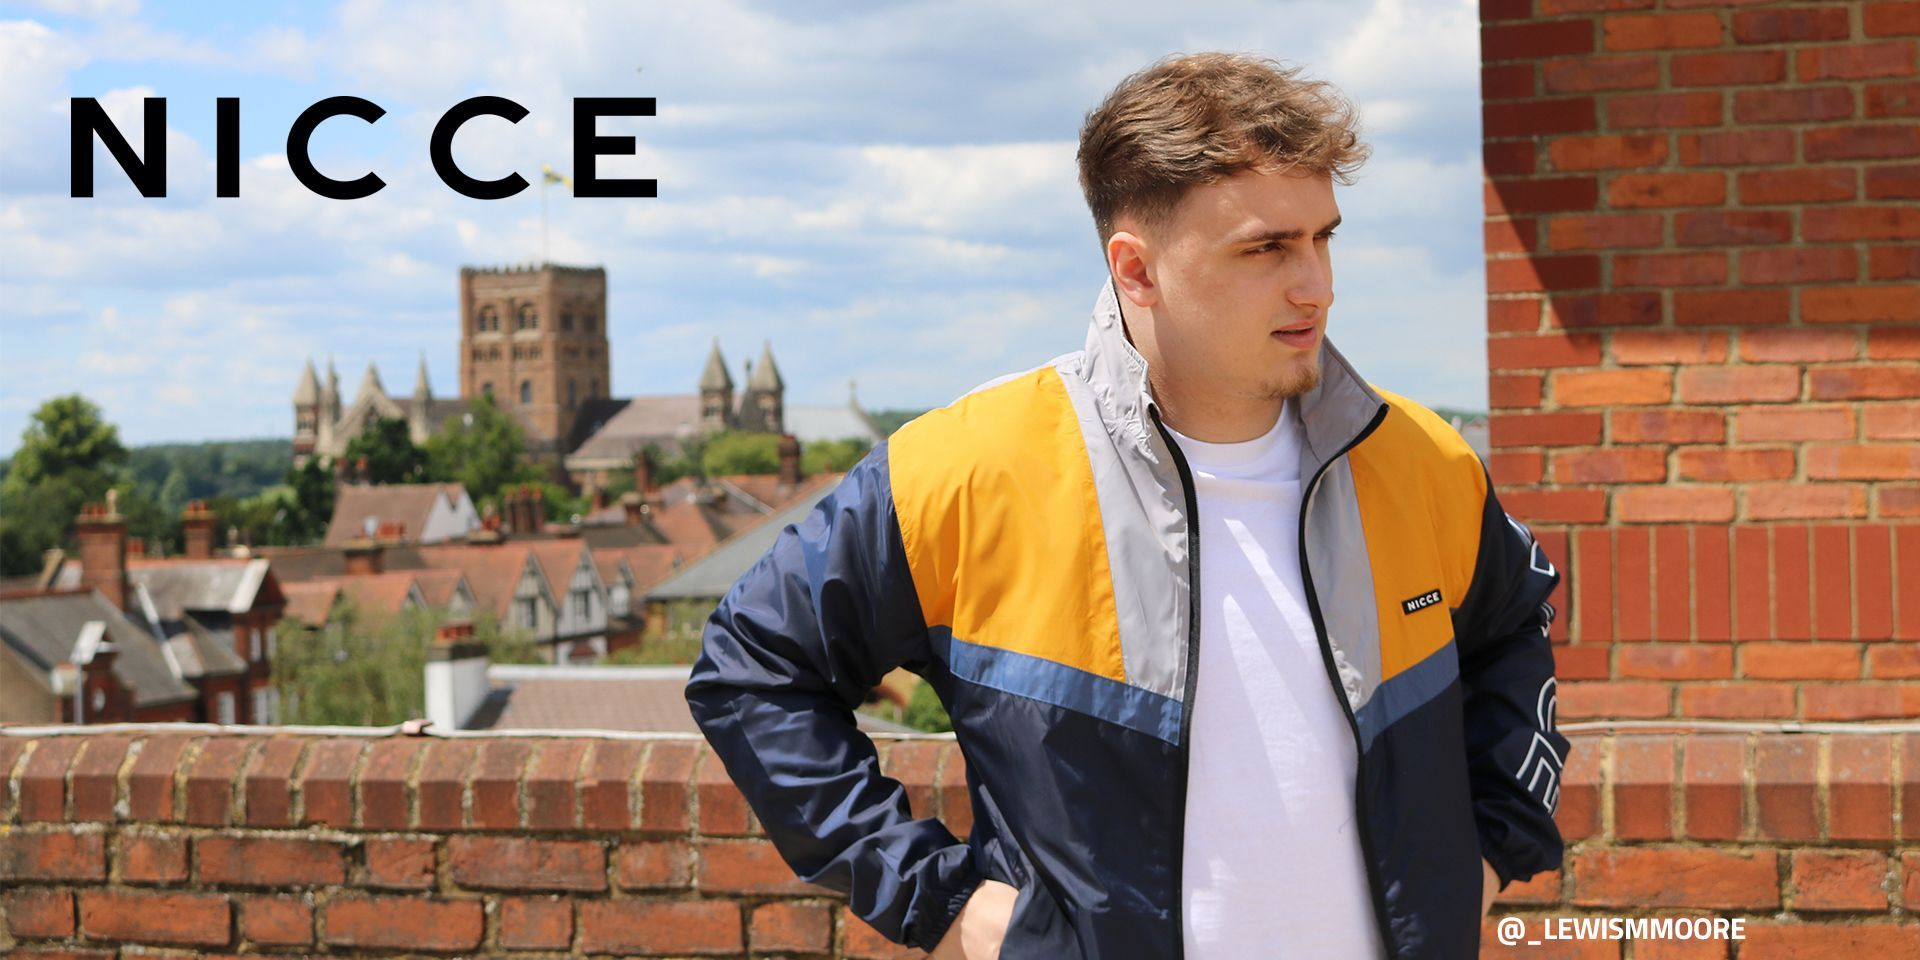 Nicce Clothing: Shop Hoodies, T-shirts and Jackets